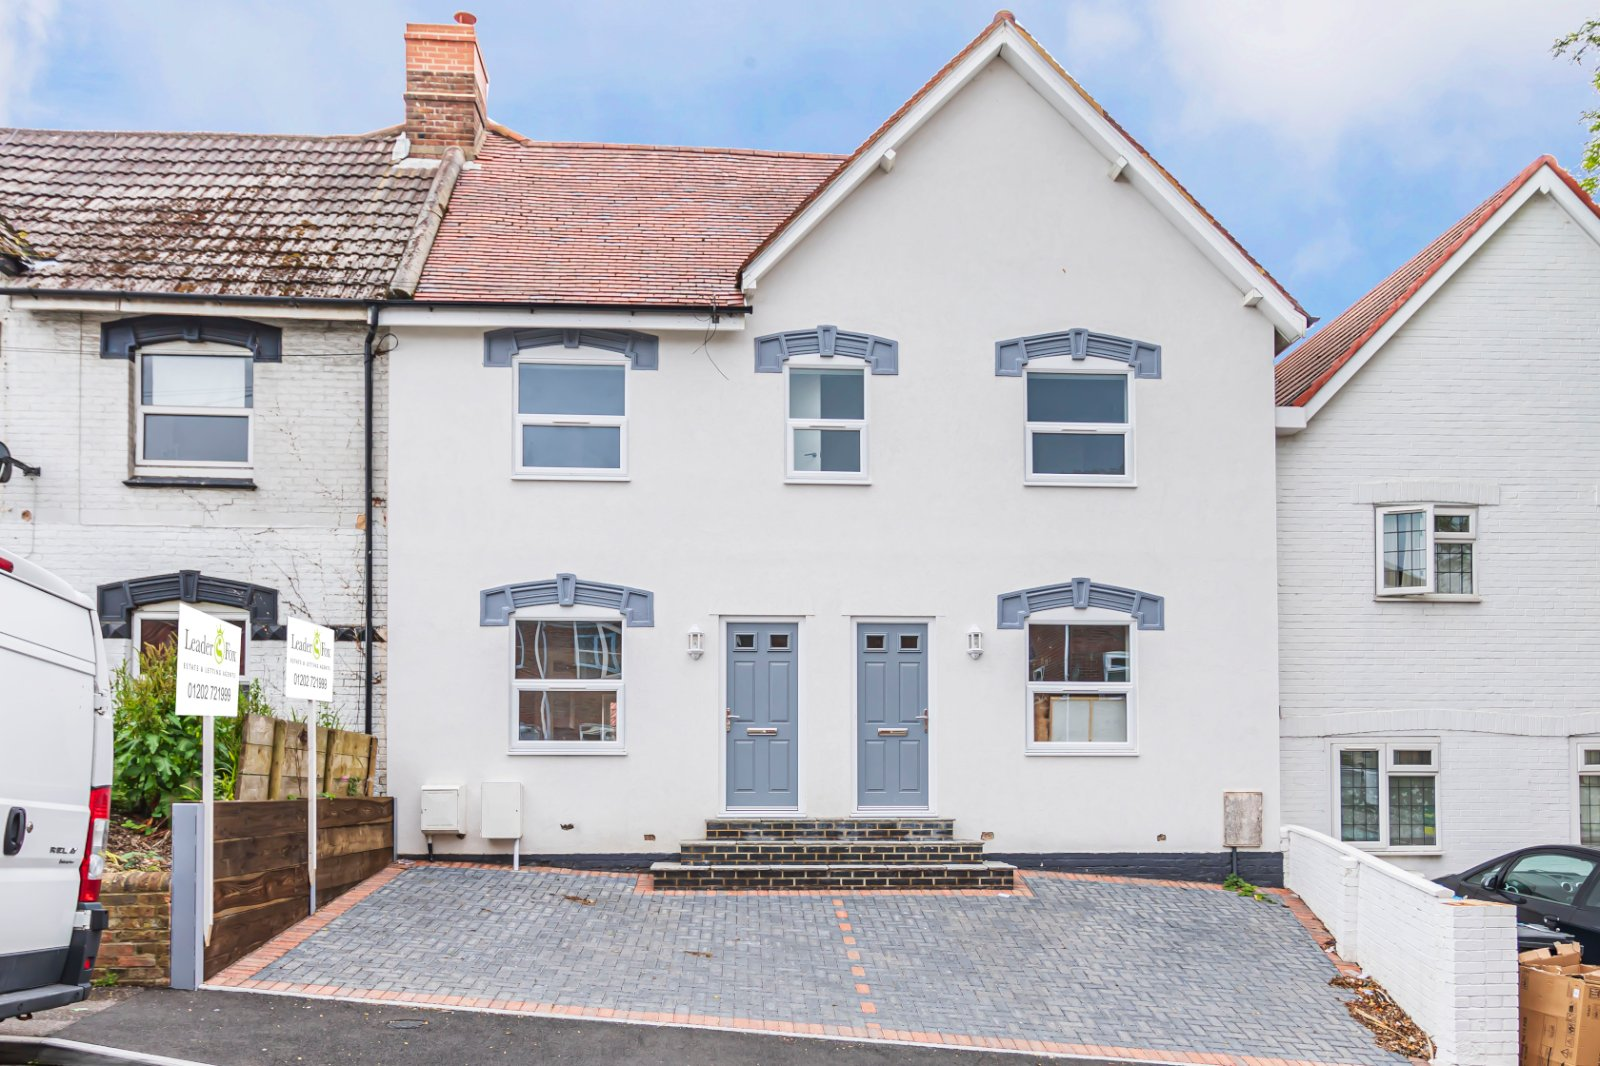 2 bed house for sale in Lower Parkstone, BH14